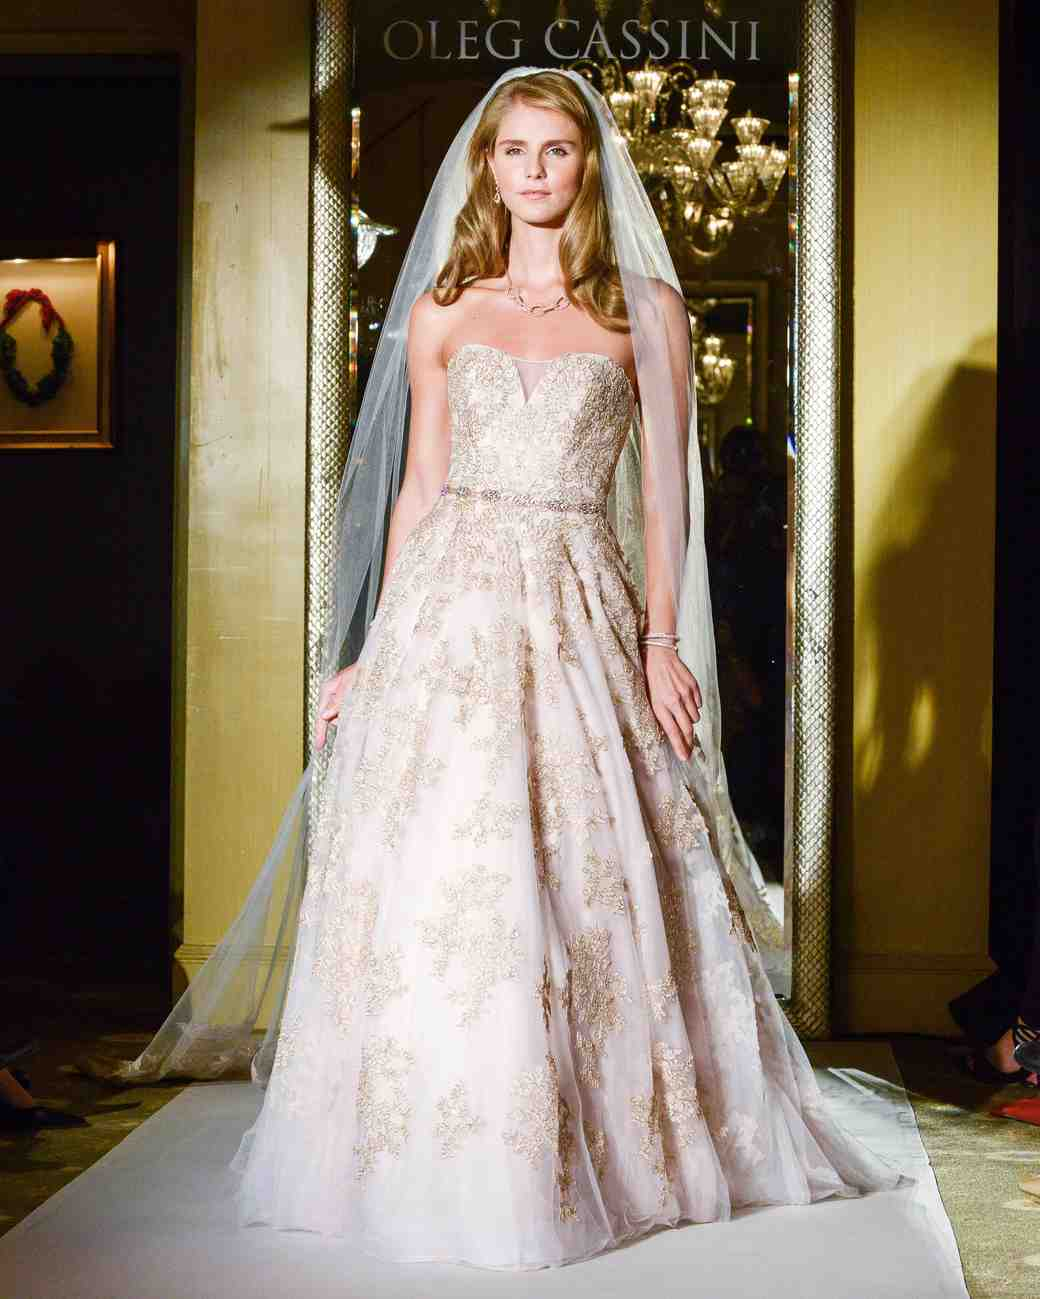 Oleg cassini fall 2017 wedding dress collection martha for Wedding dress designer oleg cassini